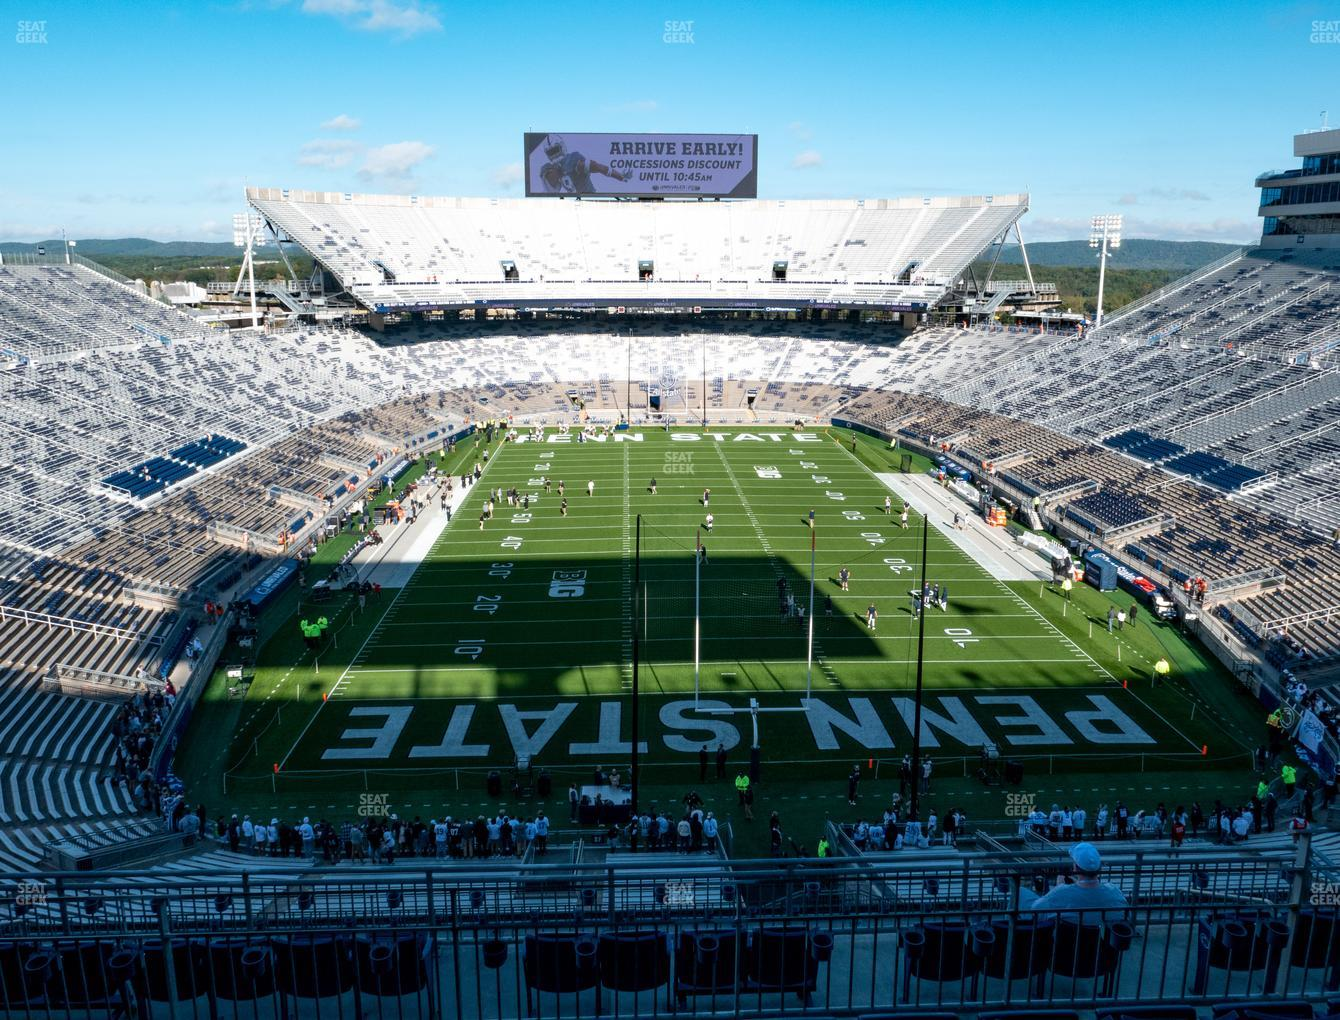 Penn State Nittany Lions Football at Beaver Stadium South F Club View